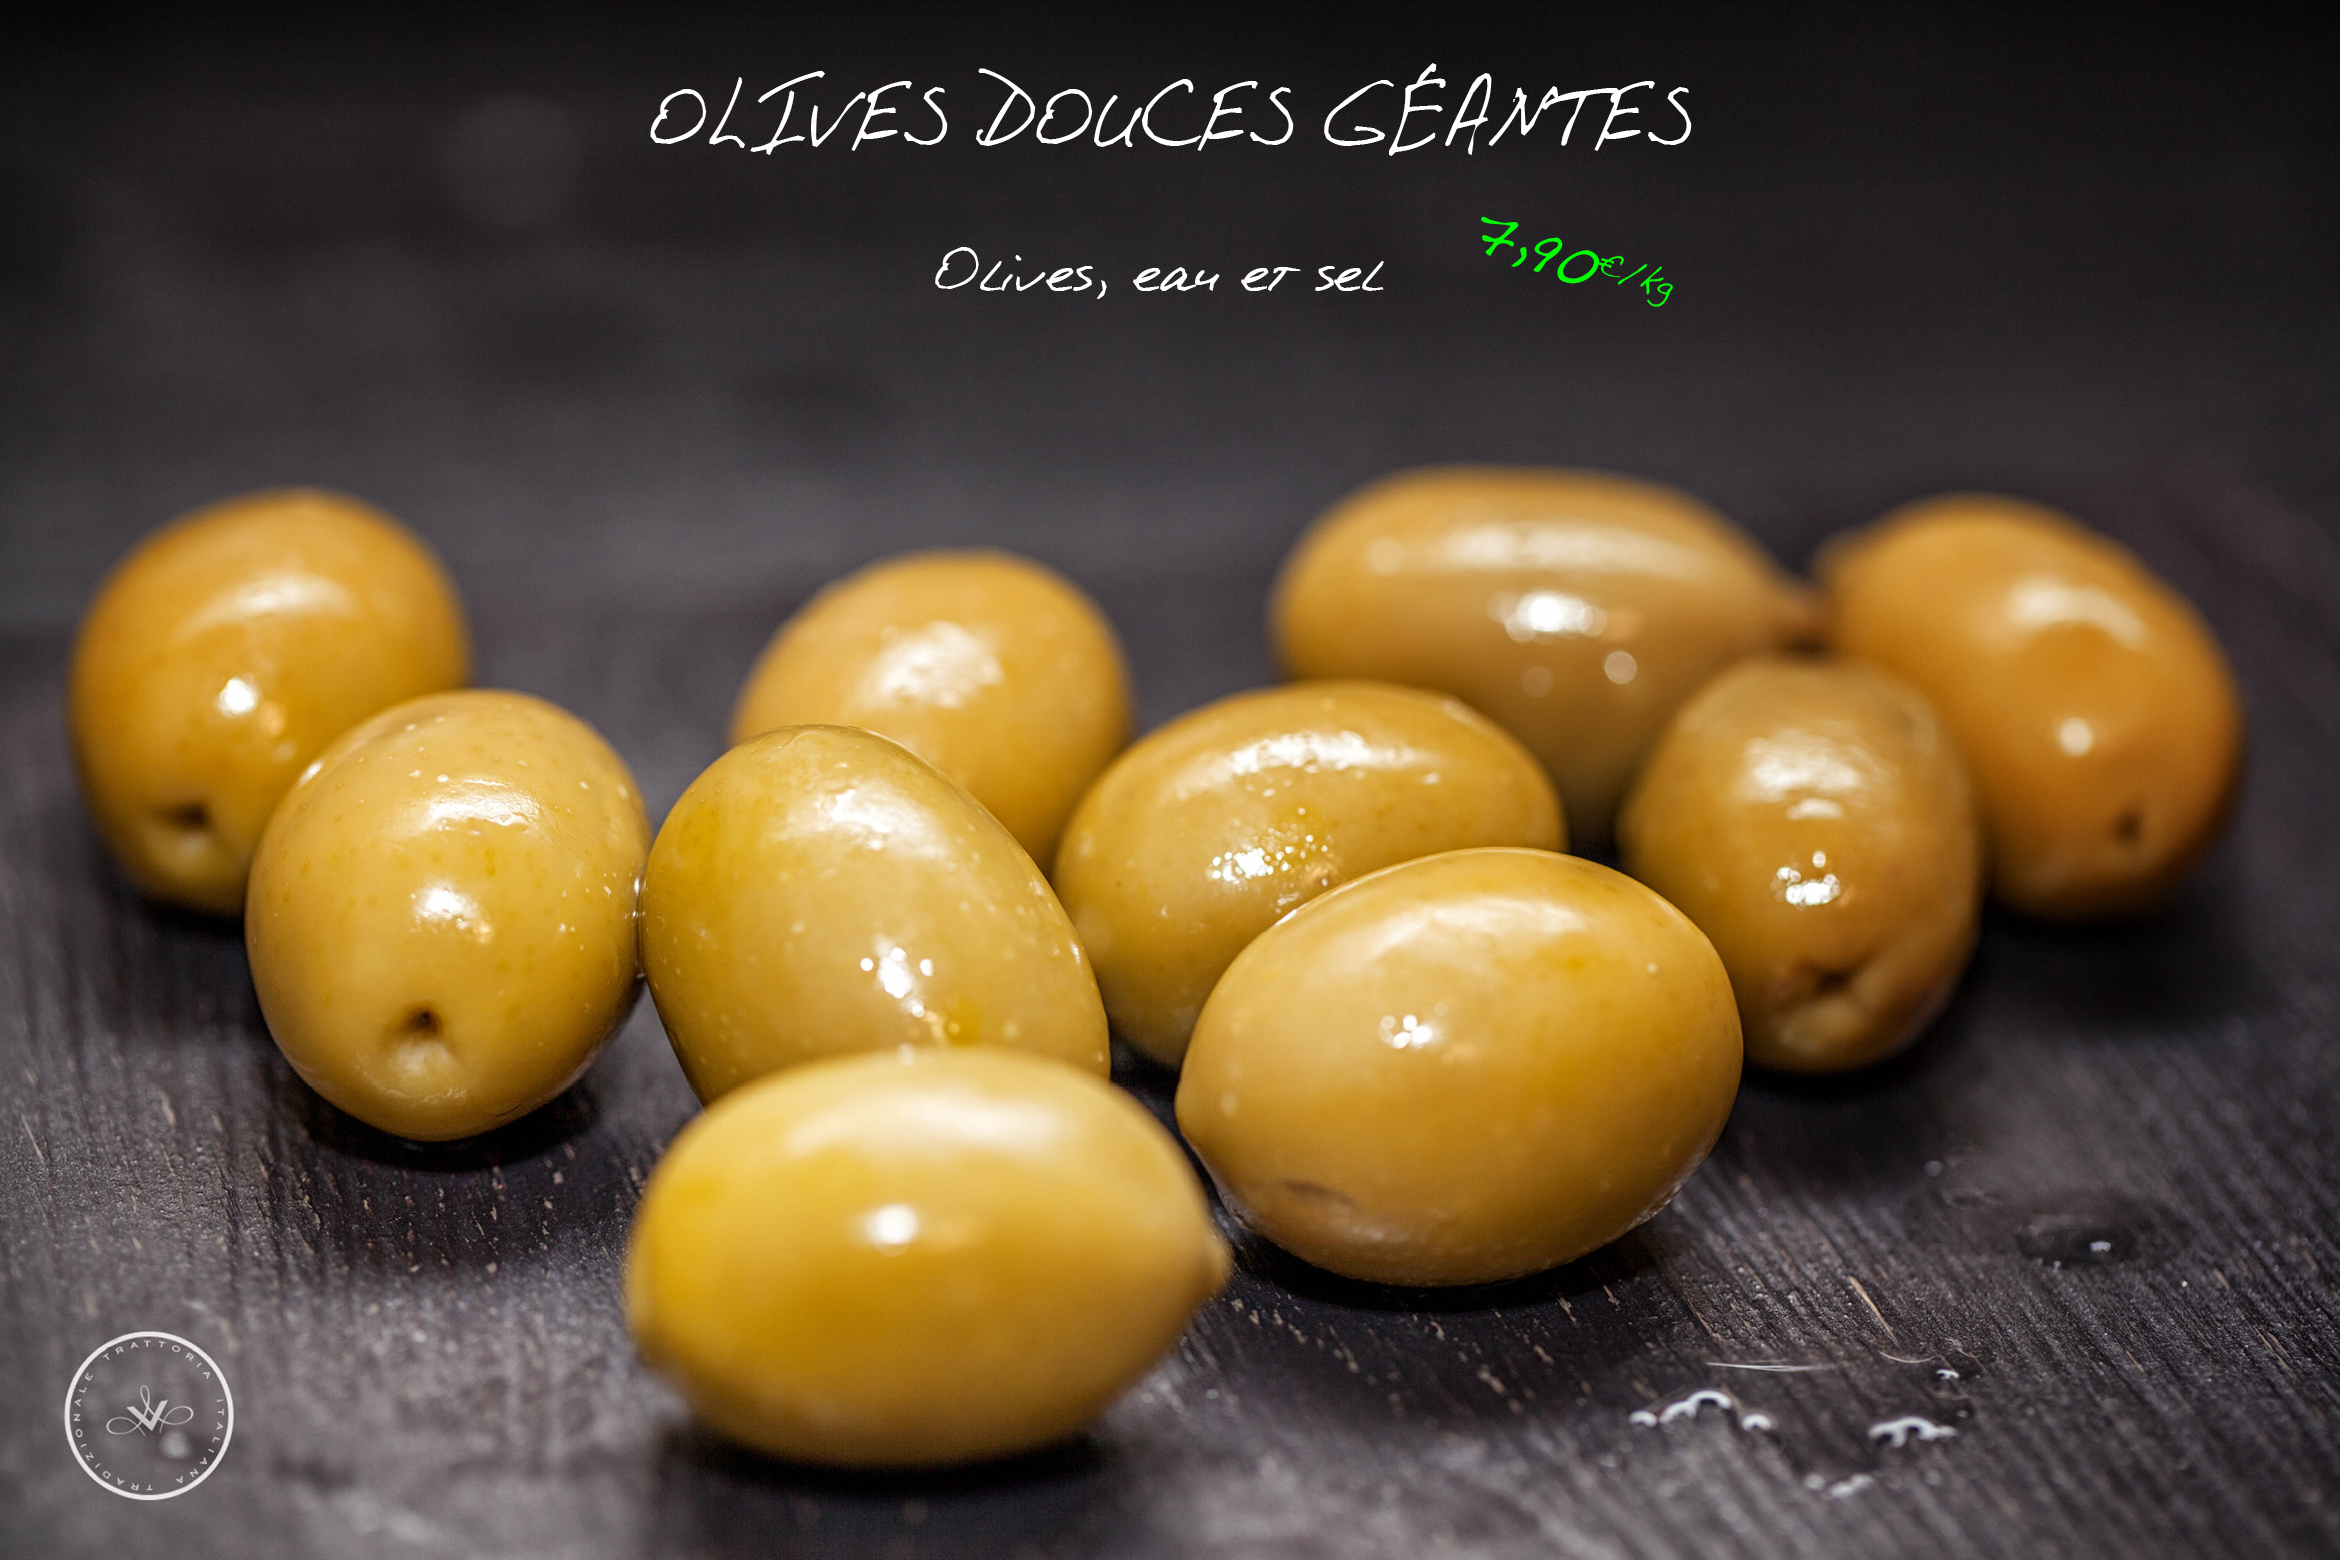 Olives GEANTES DOUCES.jpg